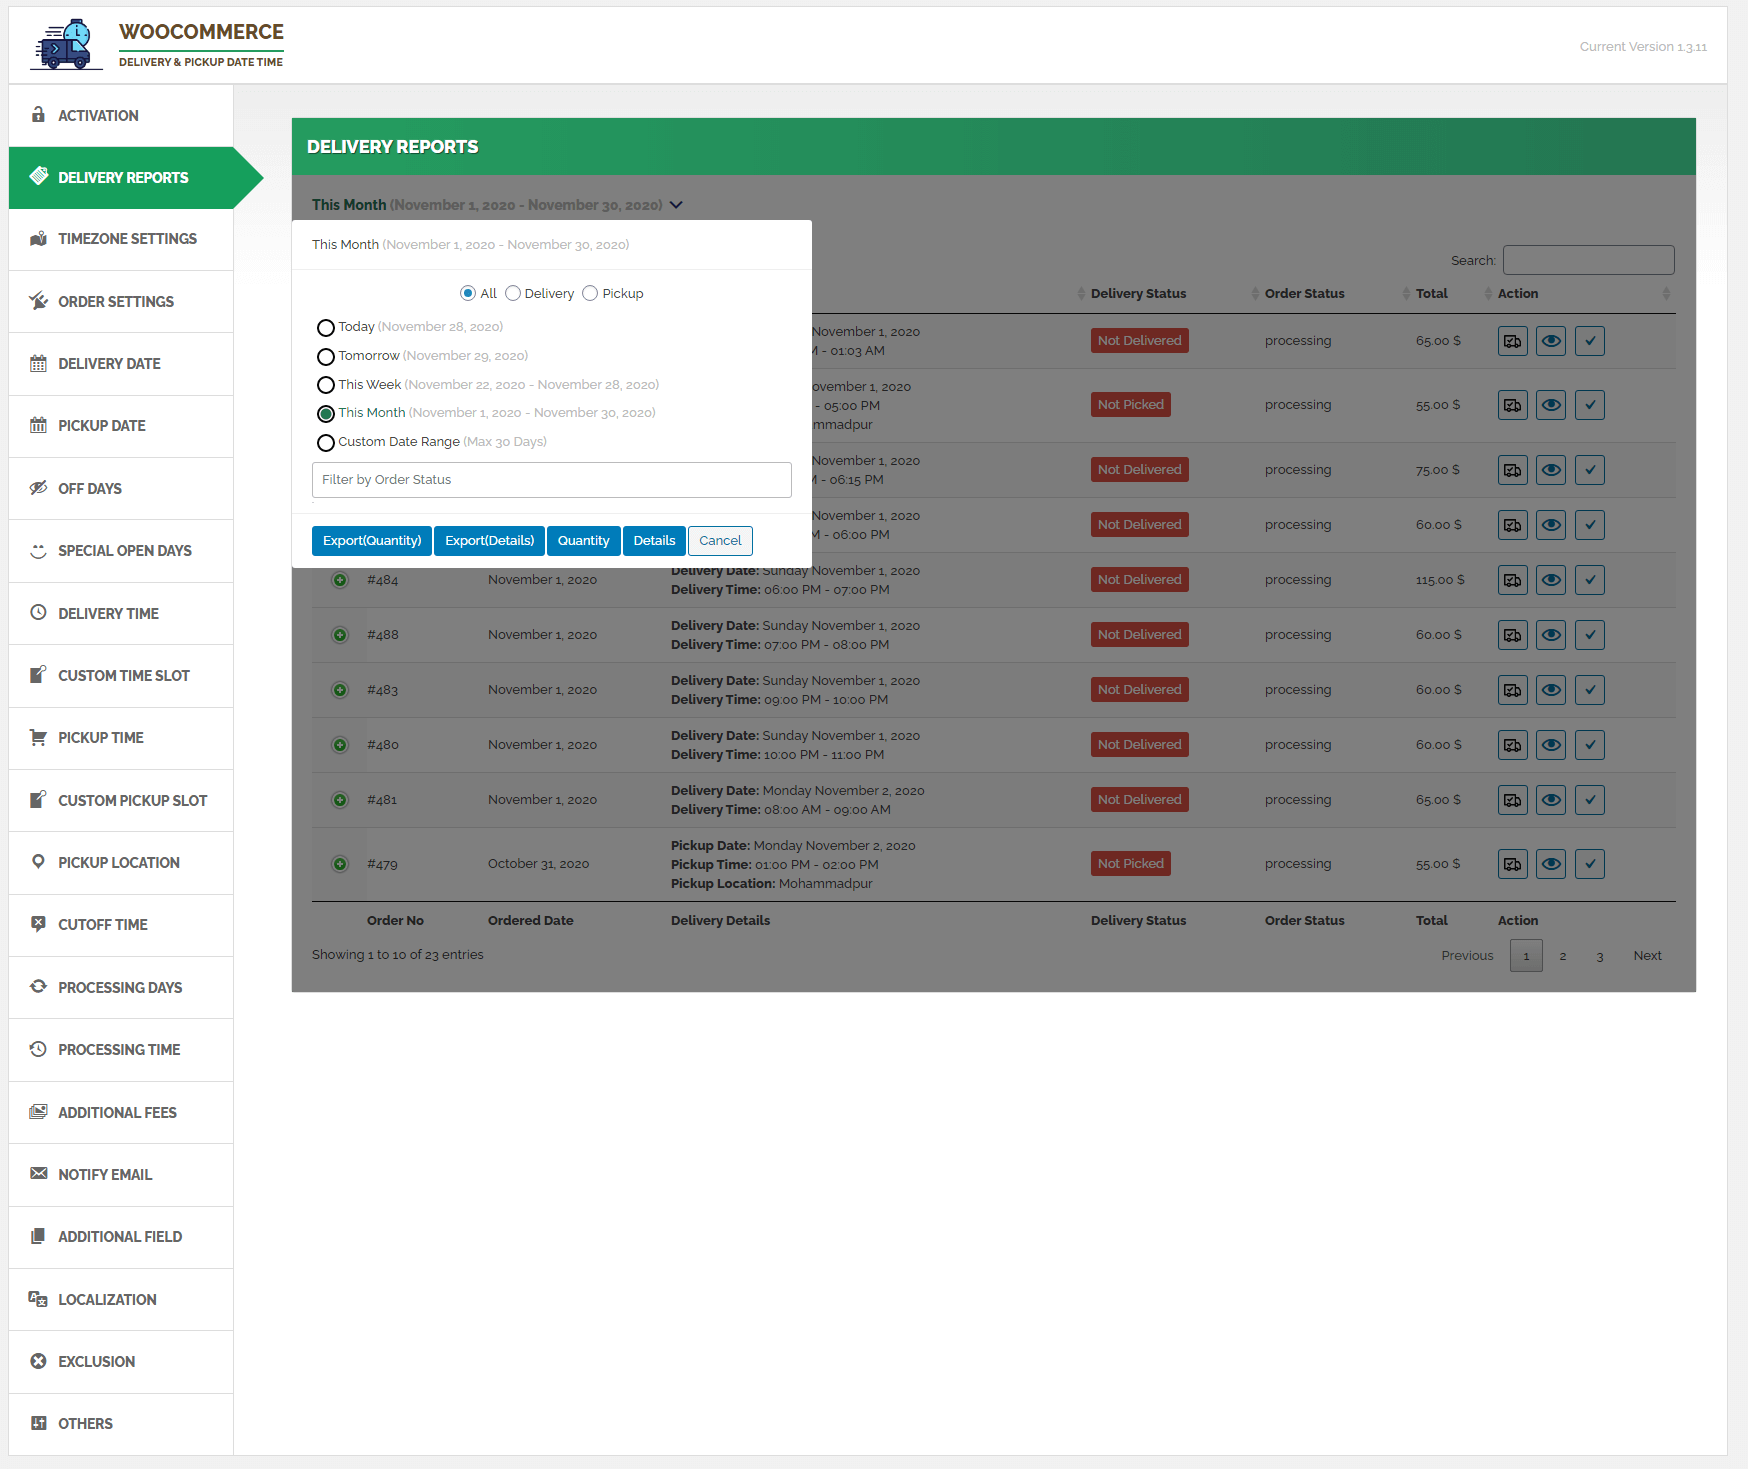 Delivery Reports Tab